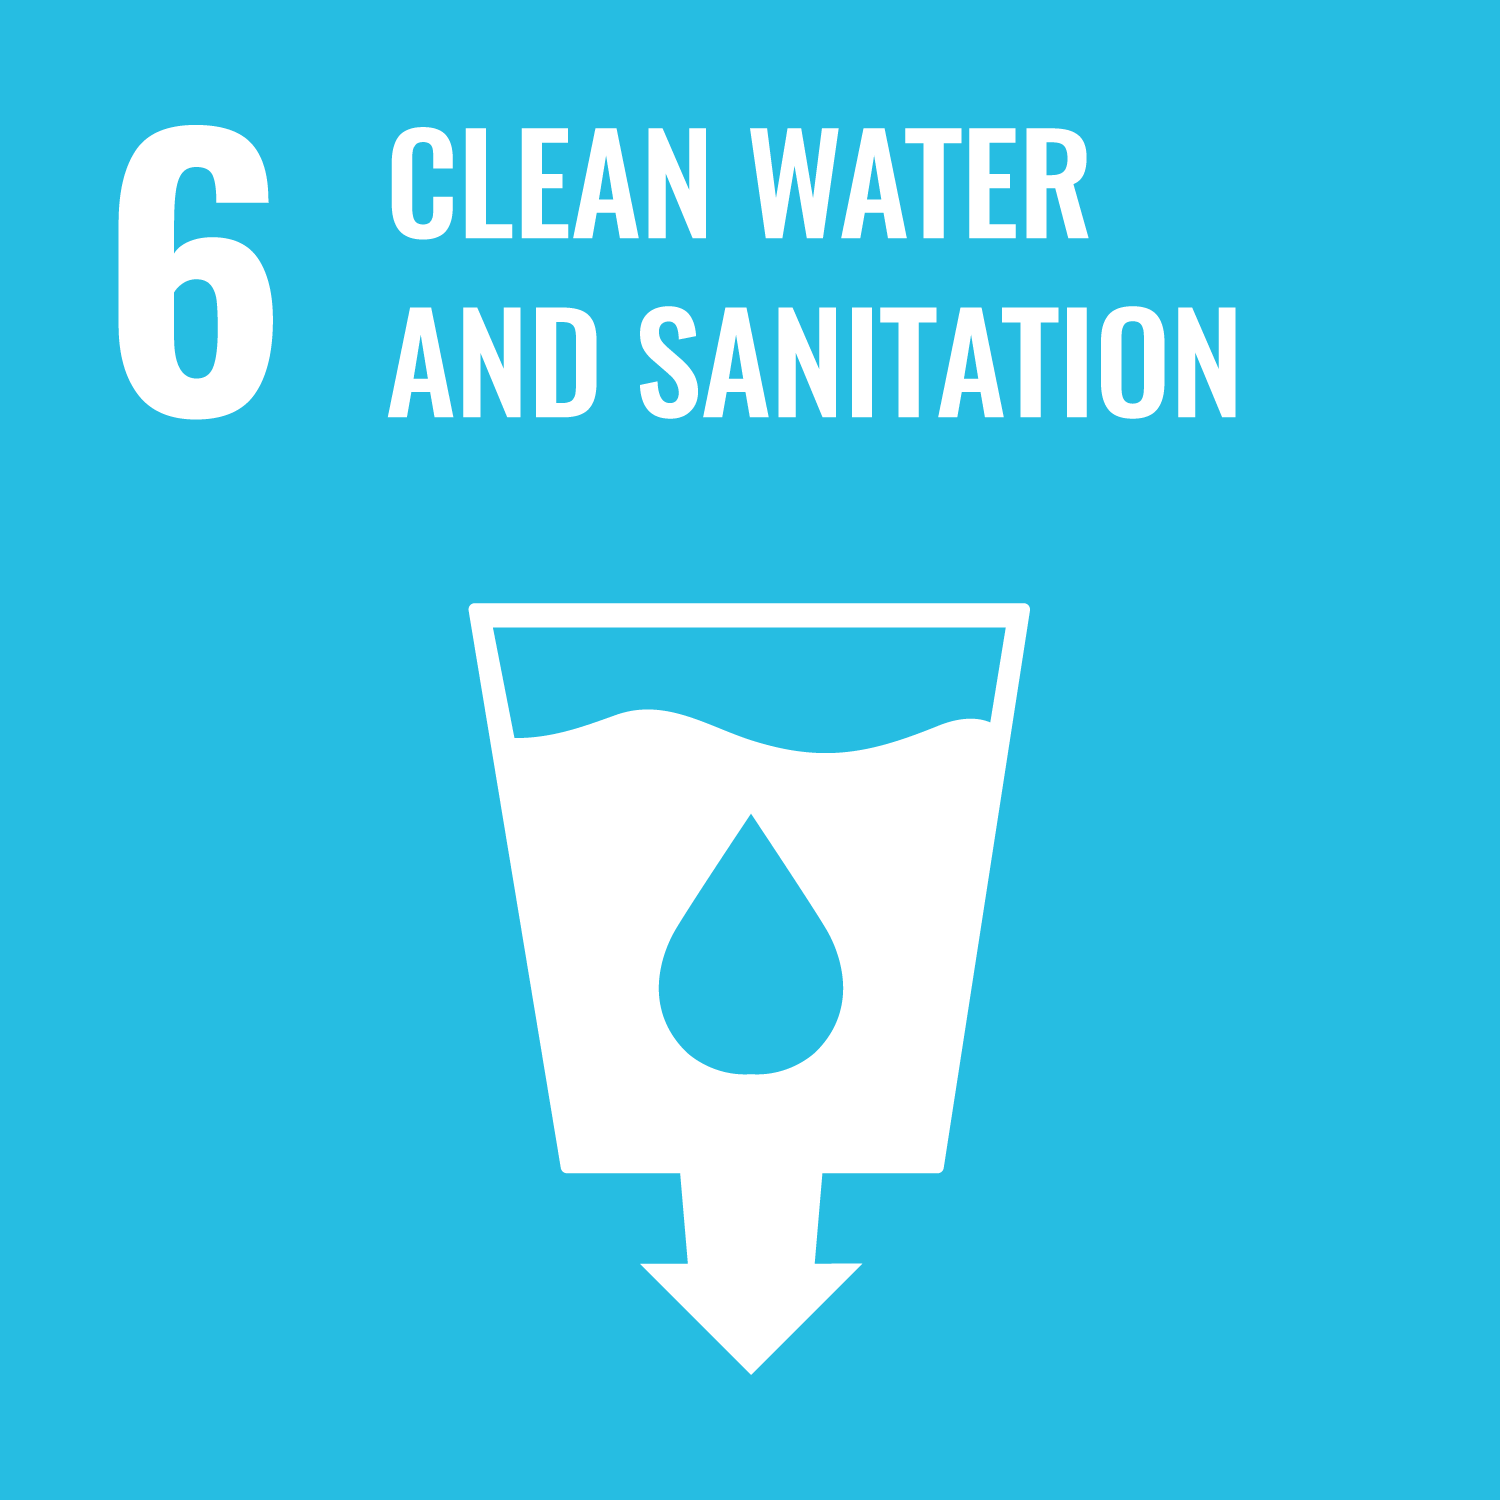 Water action decade. Water is a basic need